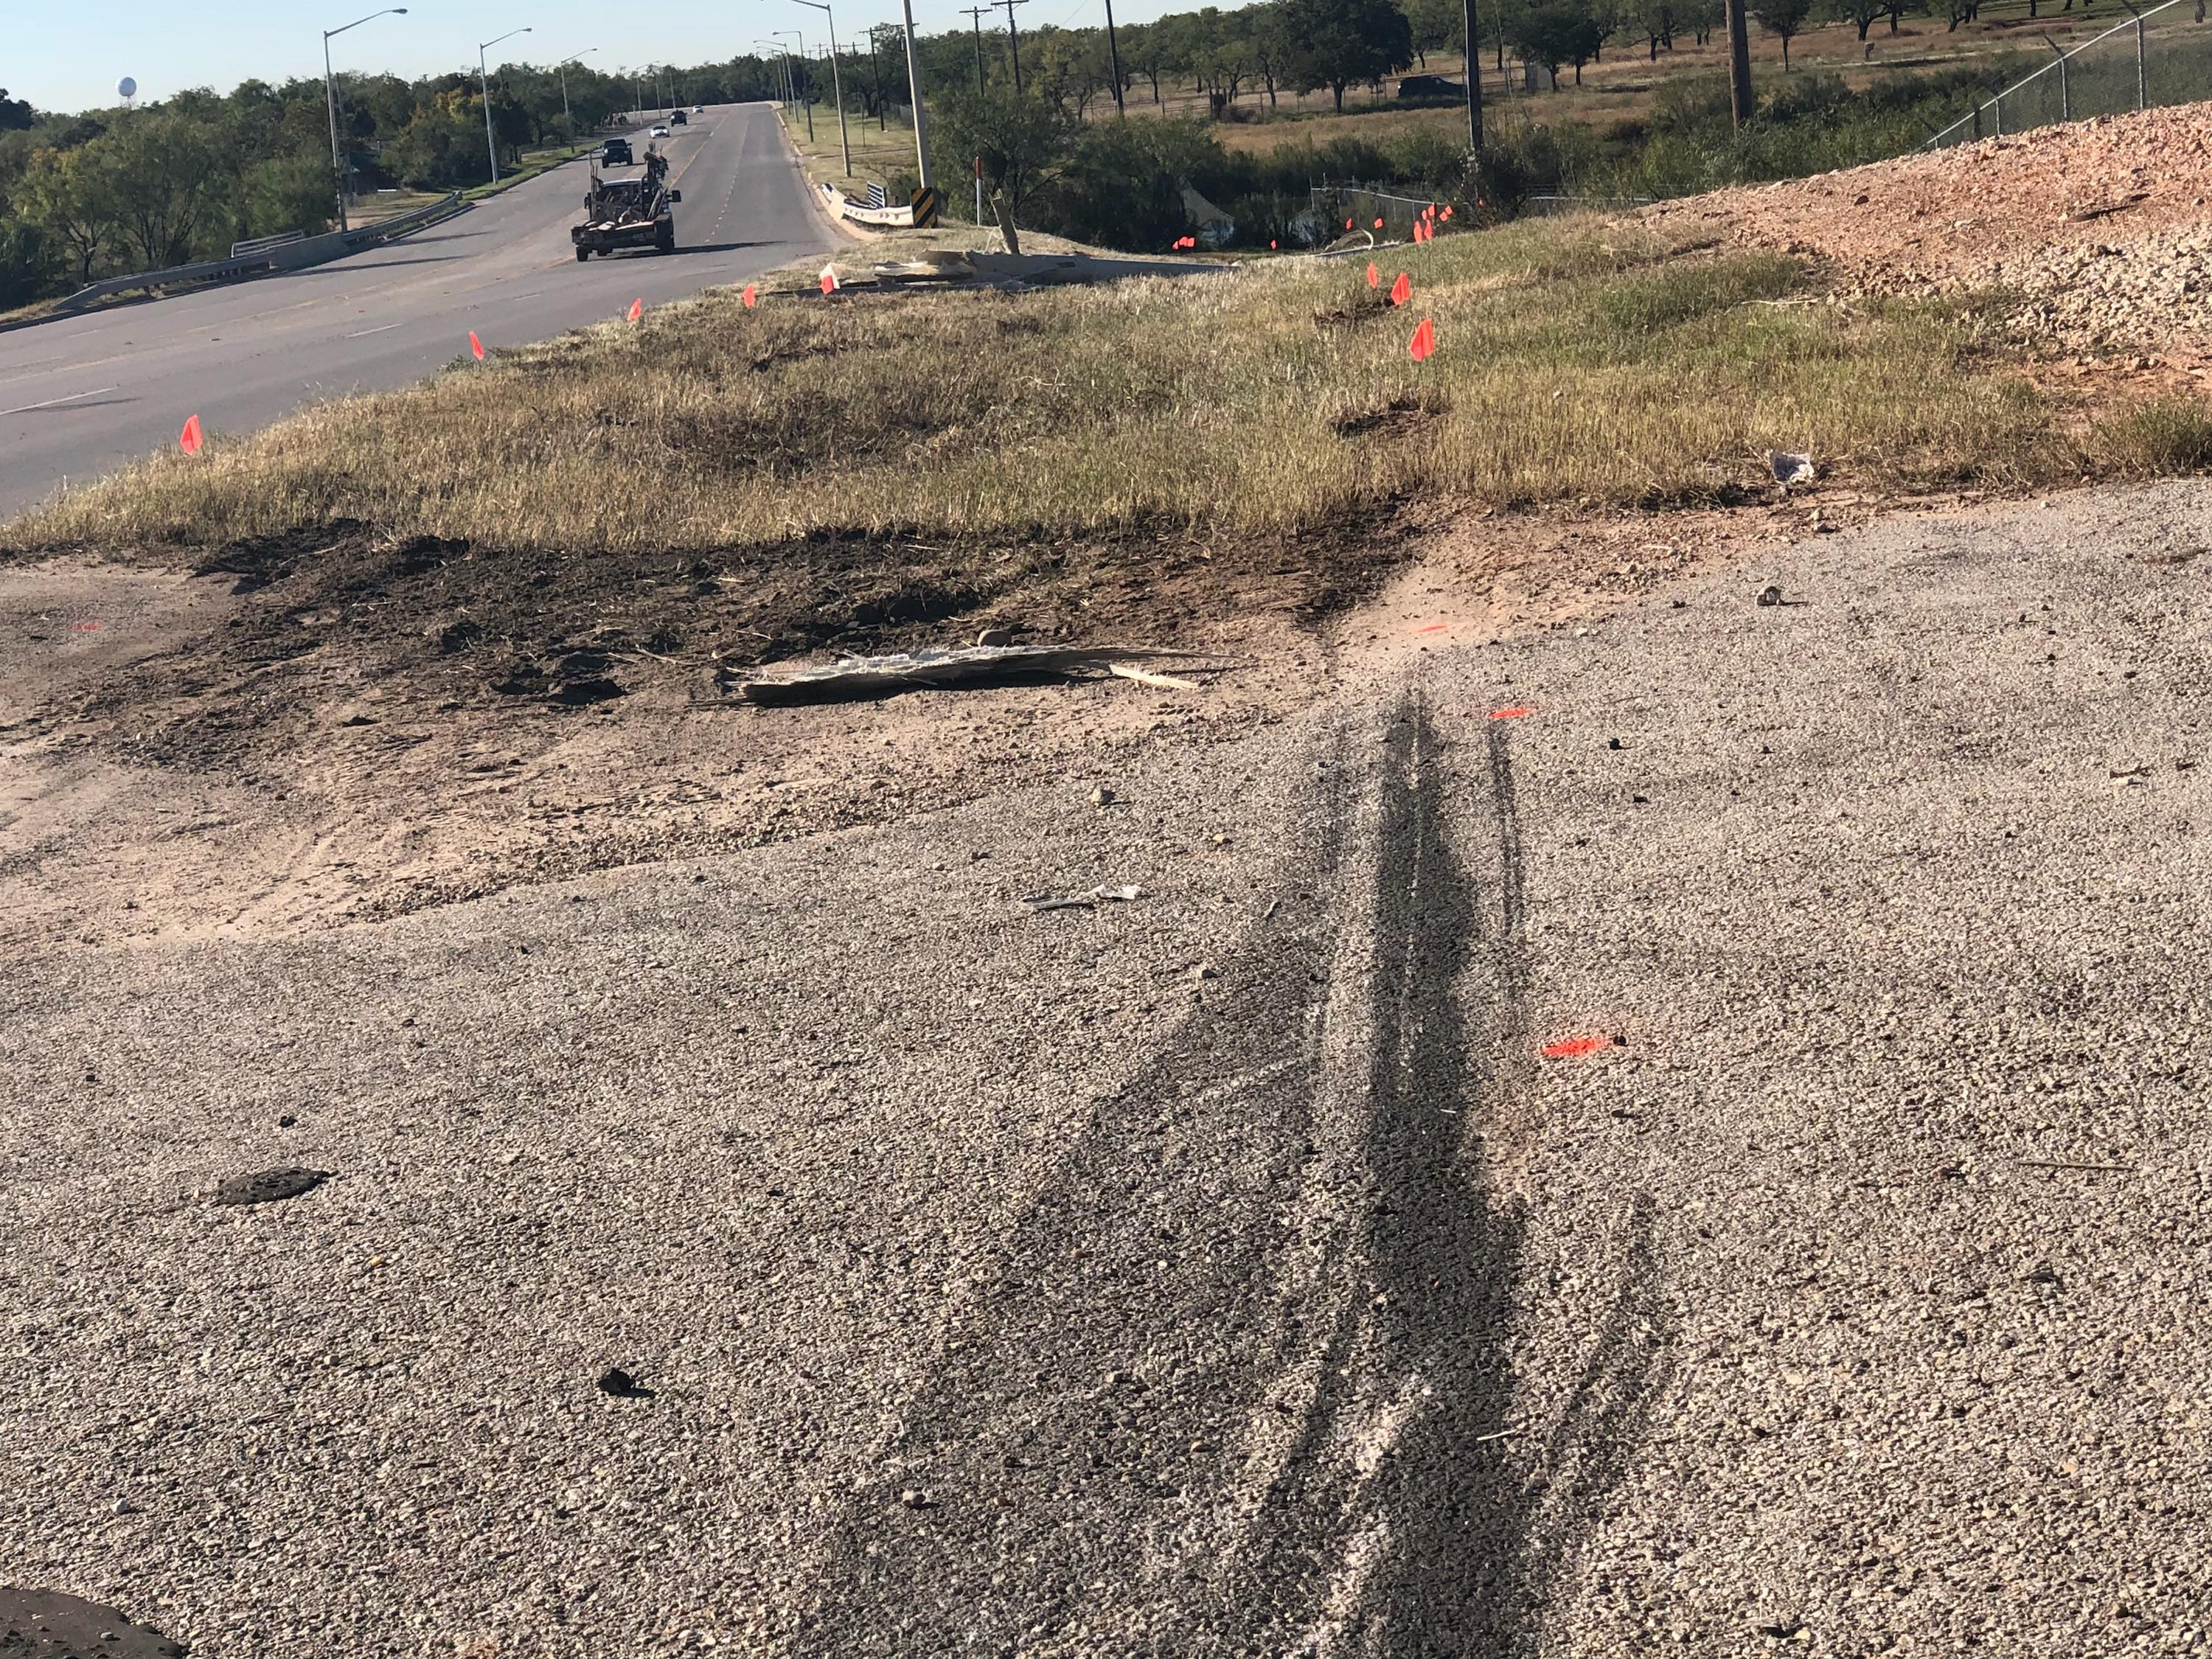 The San Angelo police investigation markets show the track of the Mustang as it left the prepared surface. (LIVE! Photo/Sam Fowler)